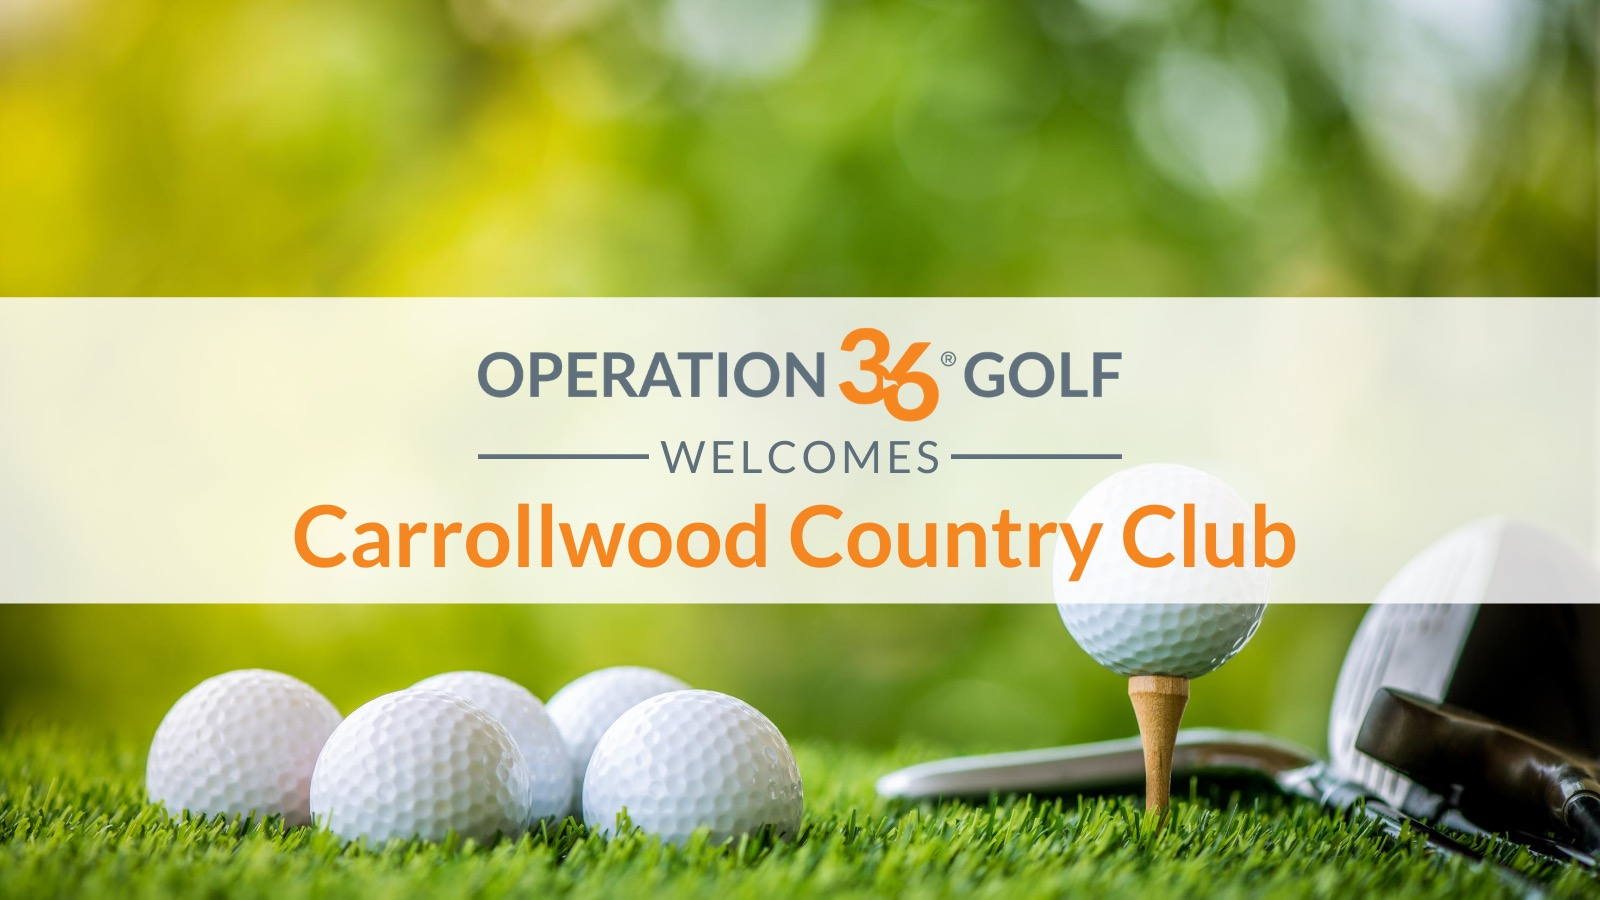 Operation 36 Welcomes Carrollwood Country Club